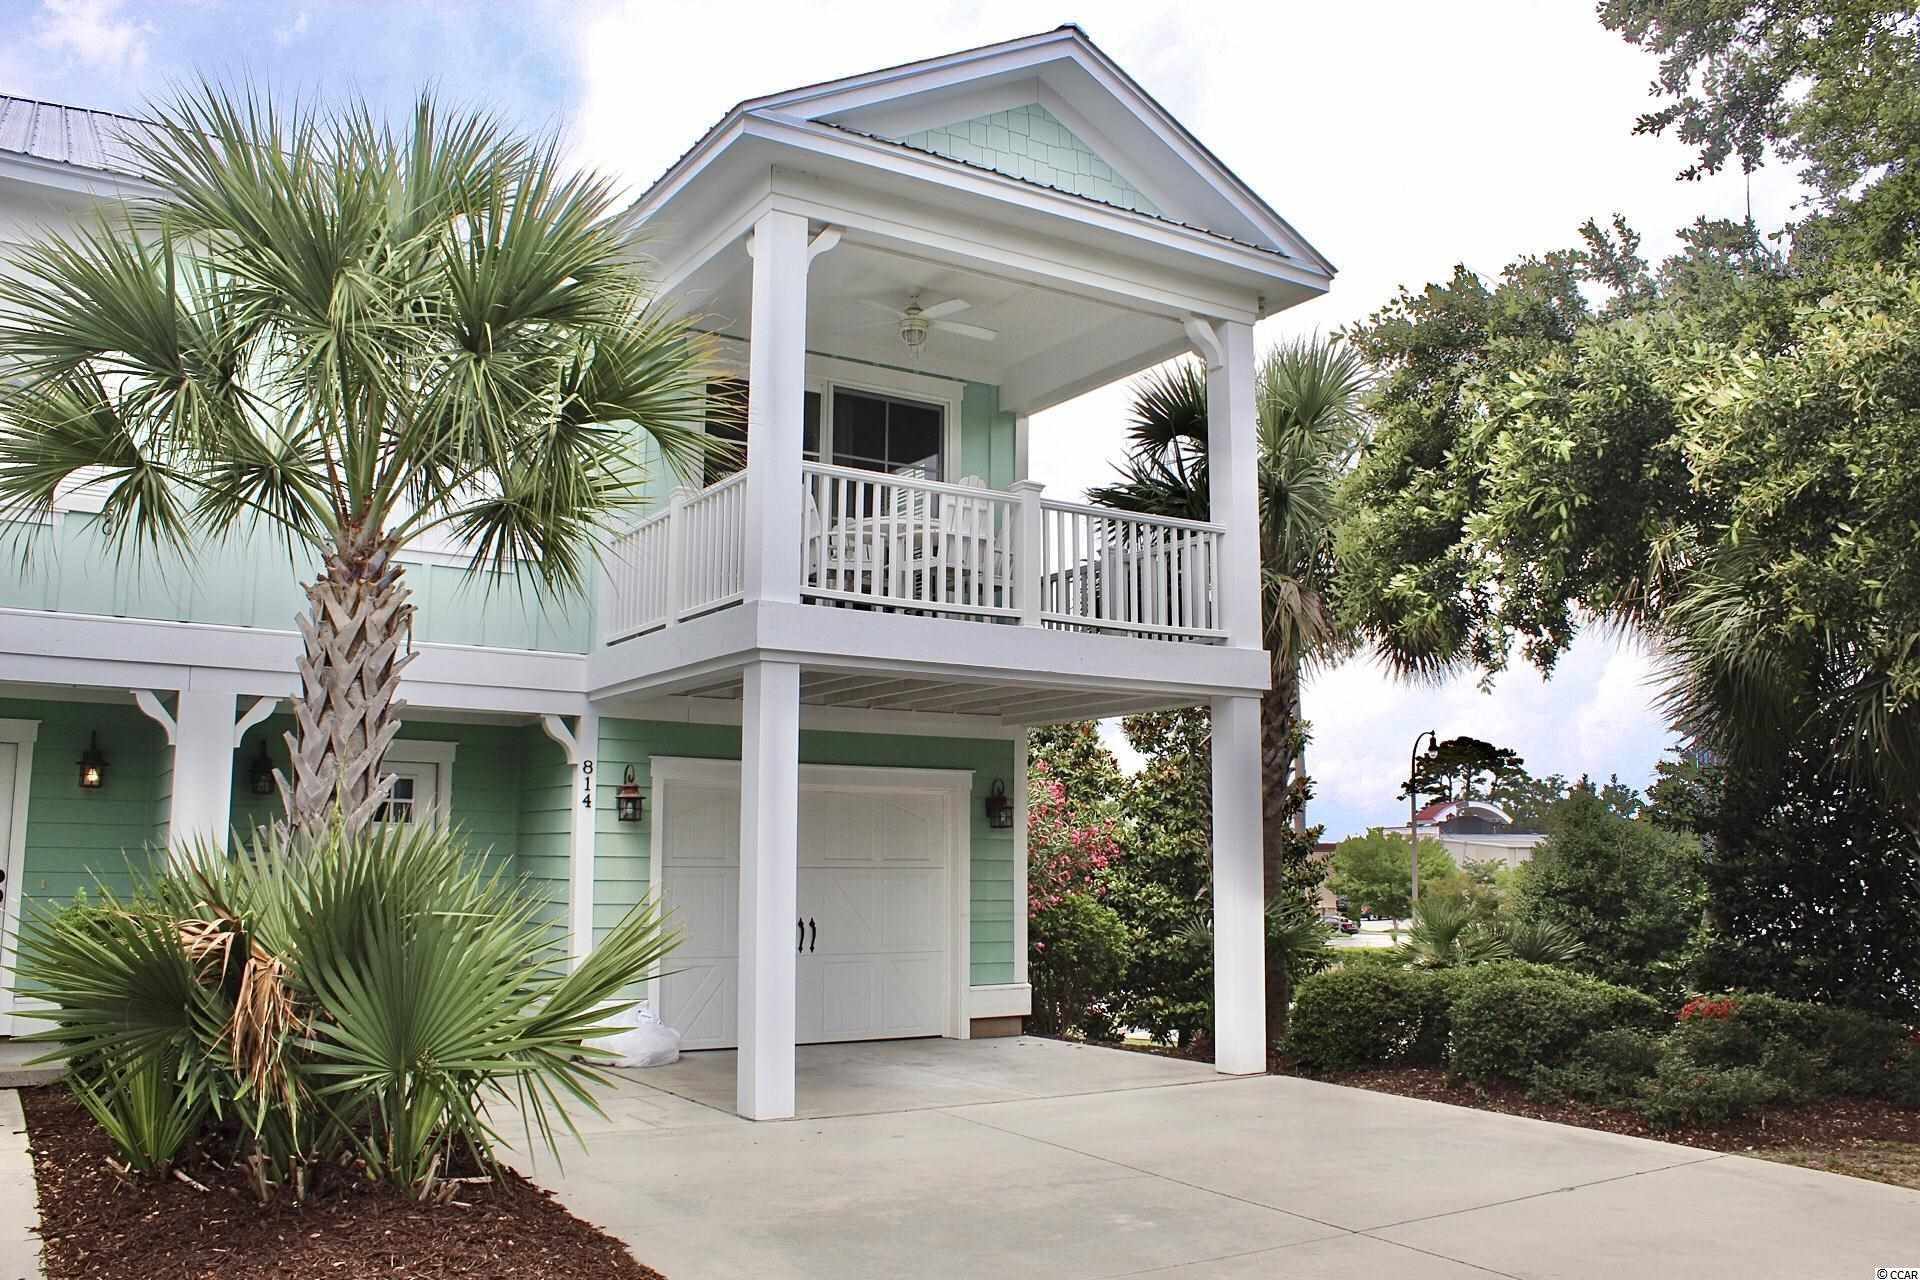 Spectacular Townhome located in the prestigious North Myrtle Beach Plantation – Plantation Villas. This resort style 2 Bedroom / 2 Bathroom unit with a single car garage is a MUST SEE!!! This unit is plentiful in upgrades galore. From the many upgrades in the unit itself, to the amenities which includes the beautiful Atlantic Ocean, a 2.5 acre ocean front pool area with many pools, a swim up bar, lazy river, Cinzia Spa, 21 Main Prime Steakhouse, walking distance to Barefoot Landing, a shuttle bus and many many more. Whether you are looking to own a little piece of paradise as a primary, secondary or investment property, with this home YOU CANNOT GO WRONG!!!  Contact us today for a private showing, this beauty will not last long!!!